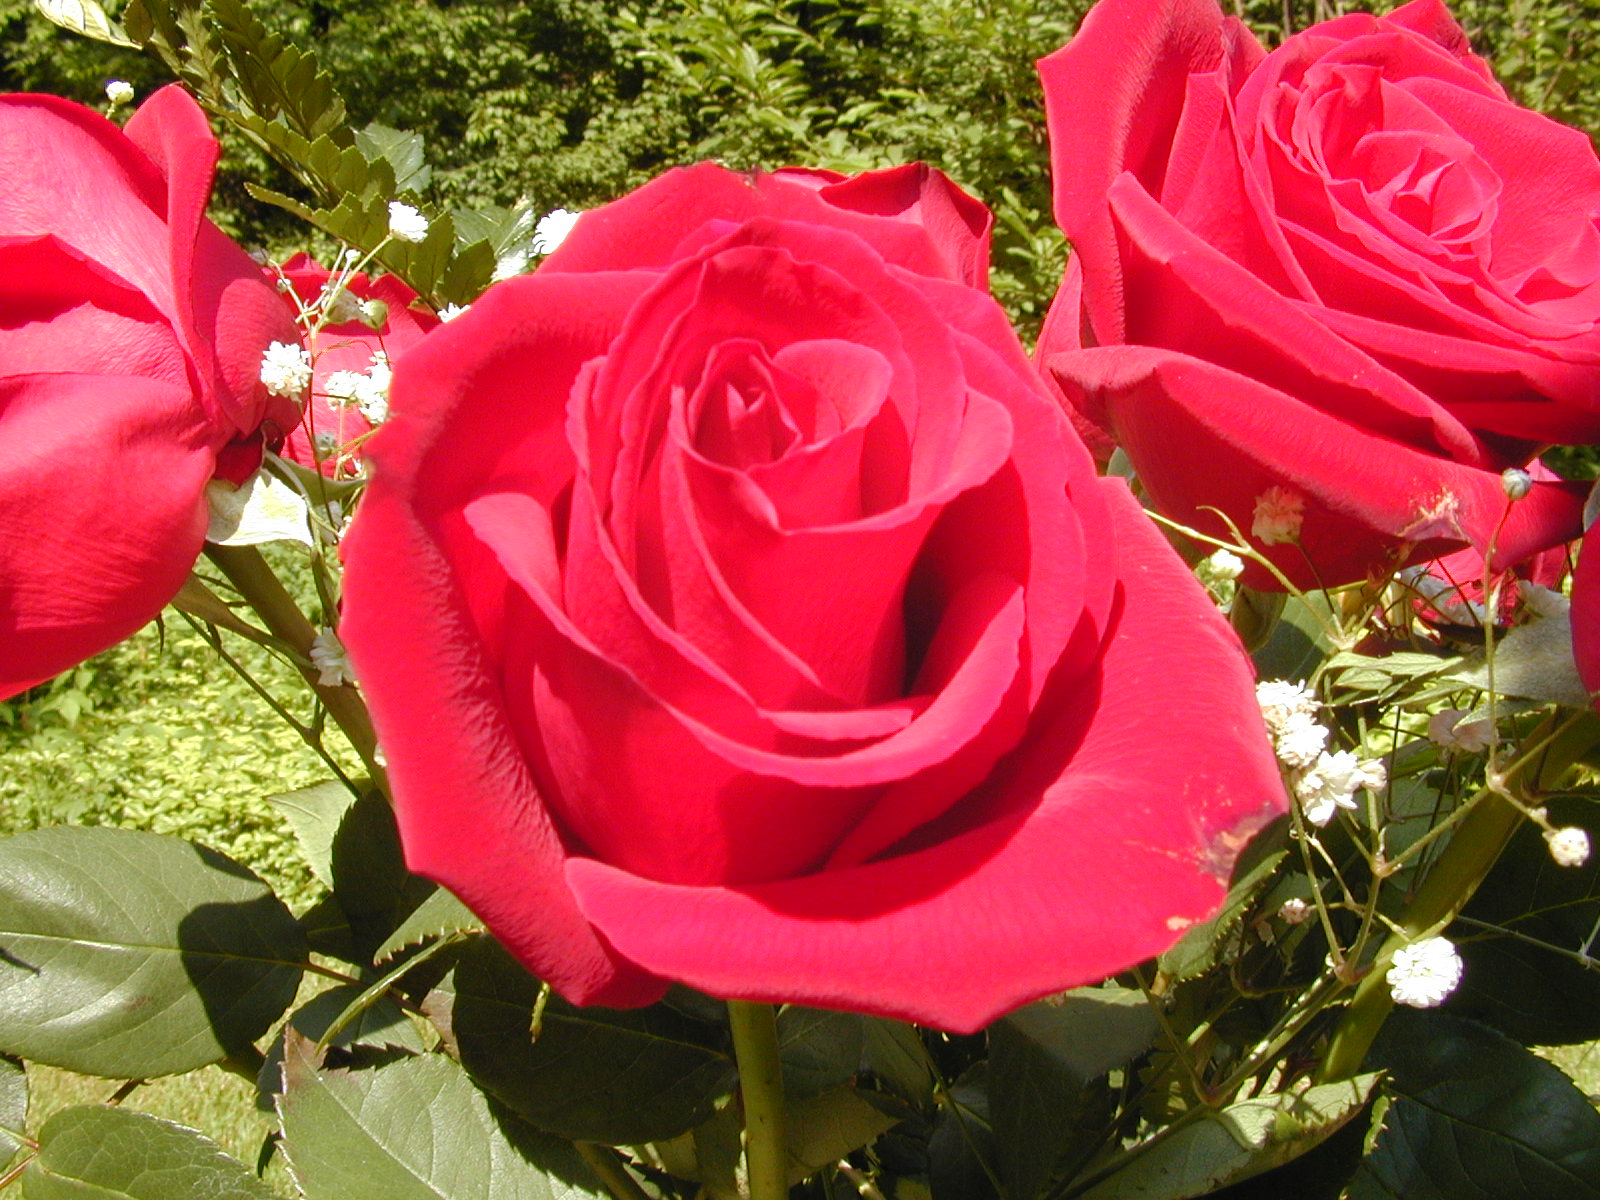 Pictures world 1600 1200 beautiful red rose wallpaper - Beautiful rose wallpaper ...